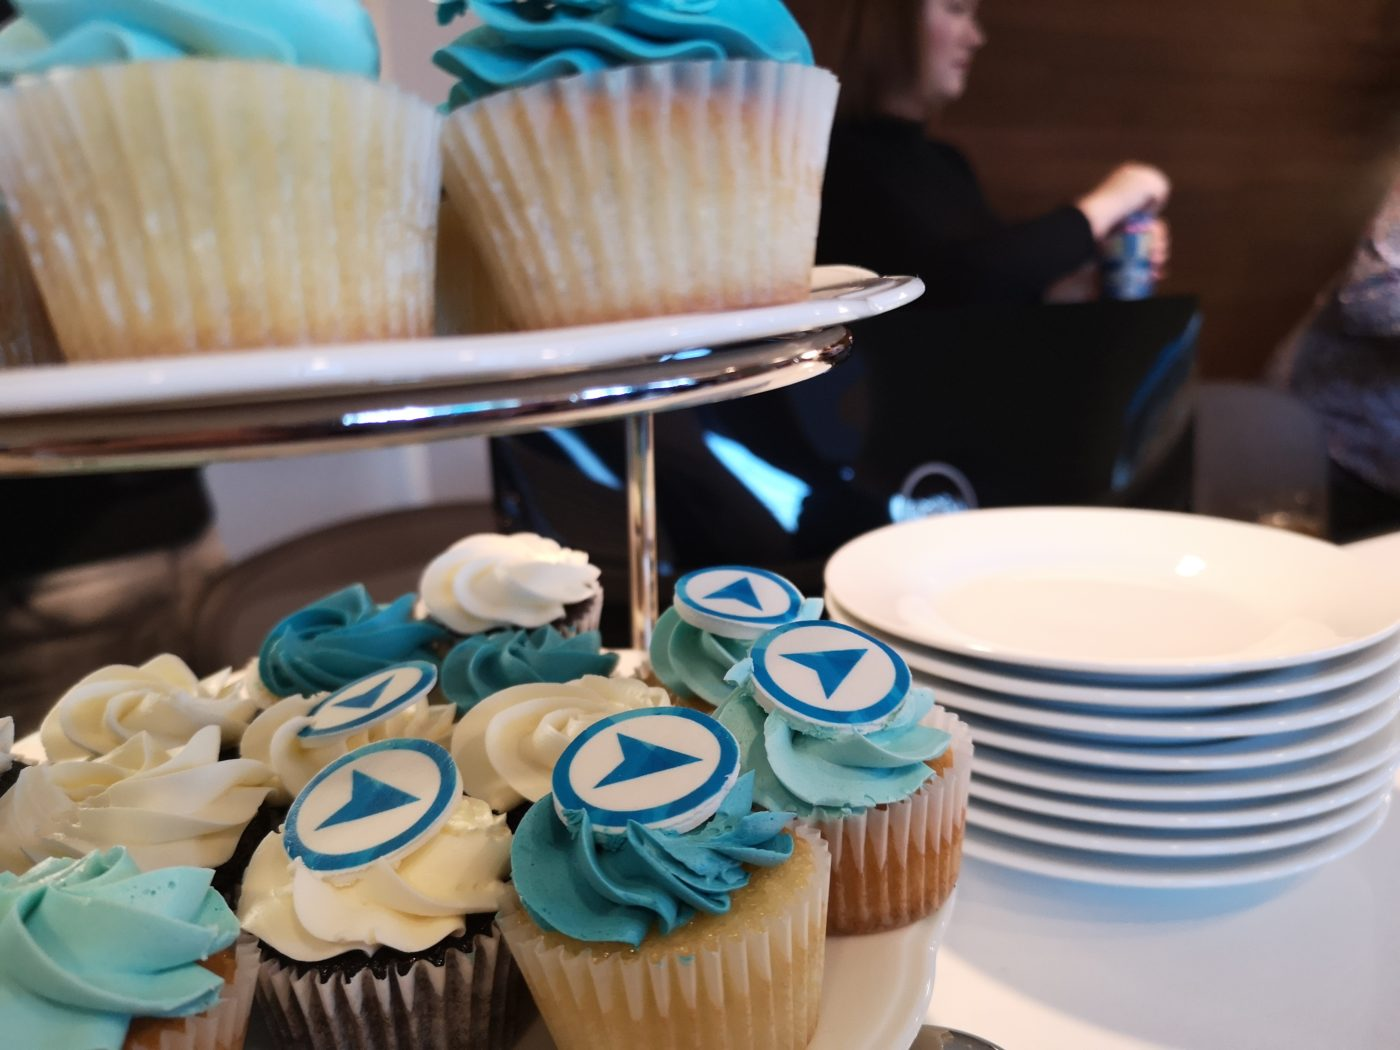 Cupcakes with tiny logos make people smile at the grand opening.